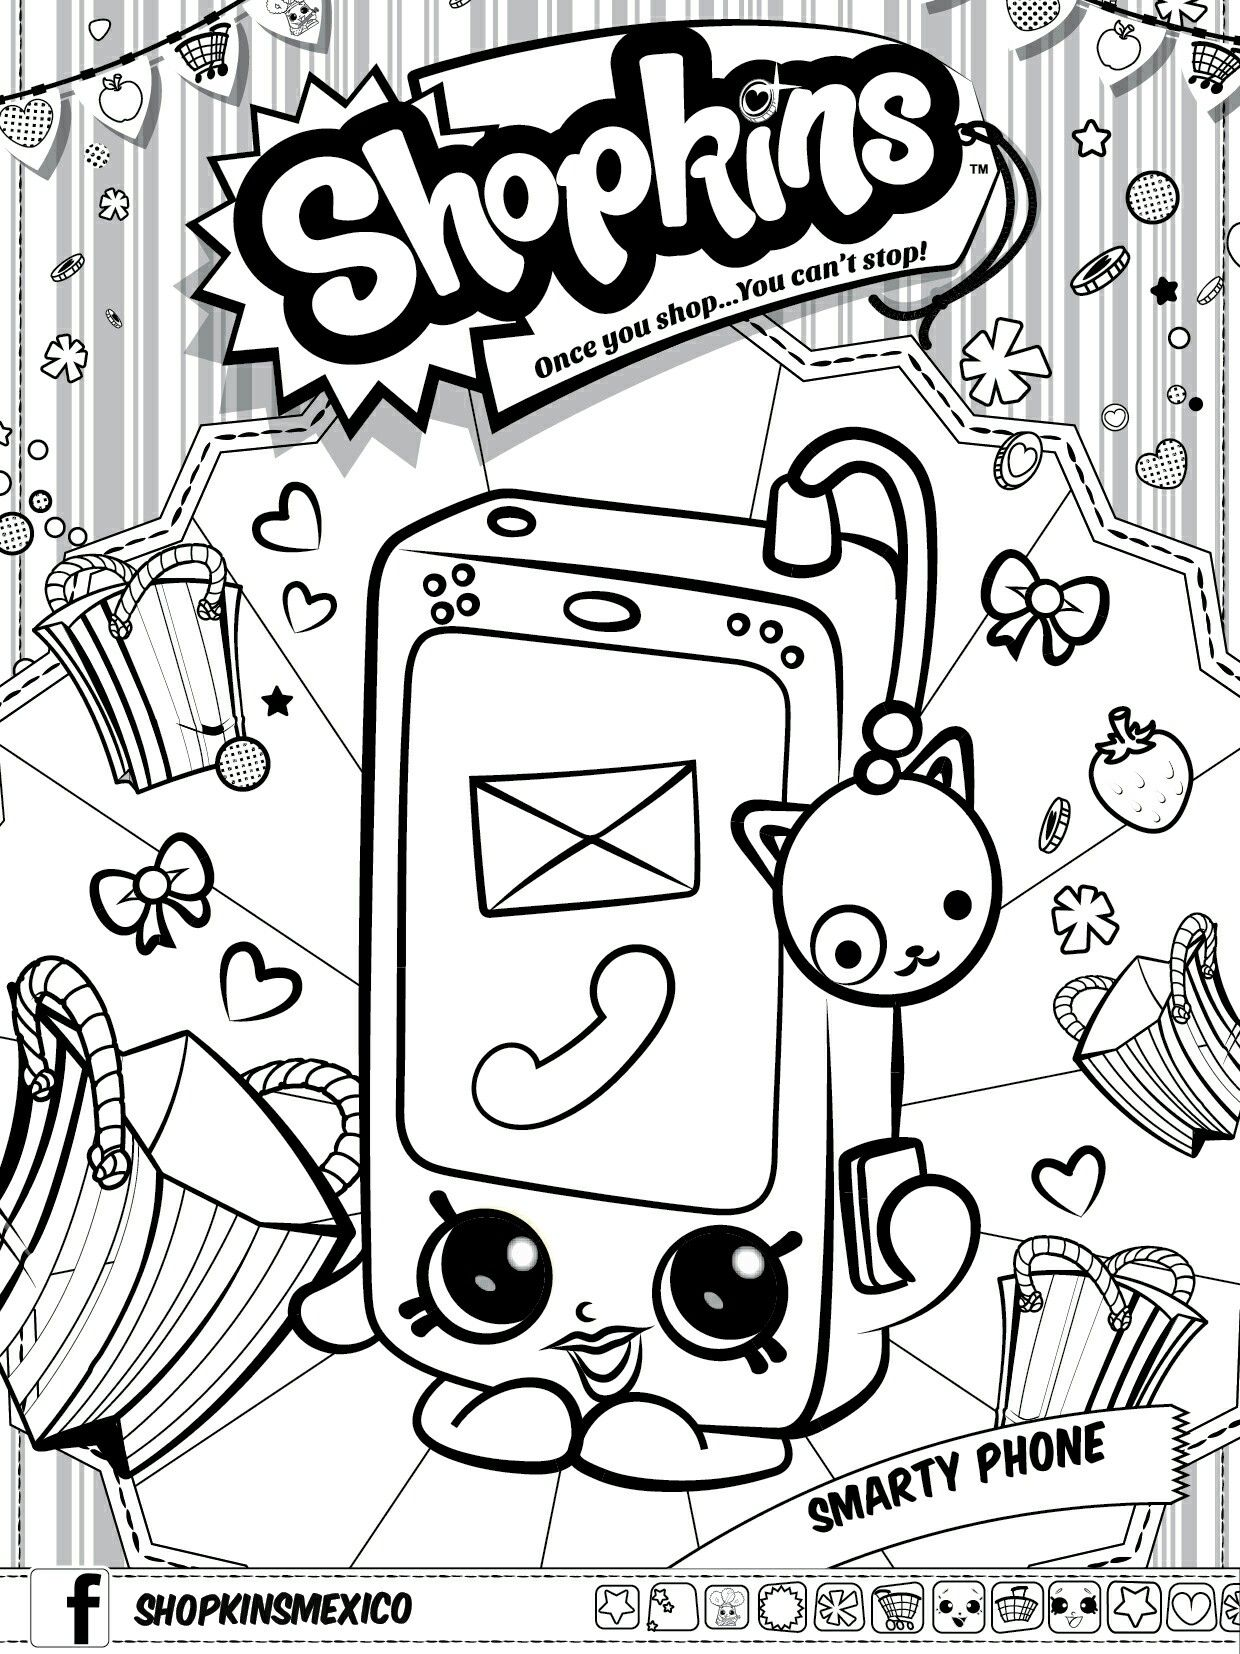 Pin By Luis Lievano On Printables For Whos Grinch Shopkins Colouring Pages Shopkin Coloring Pages Coloring Pages